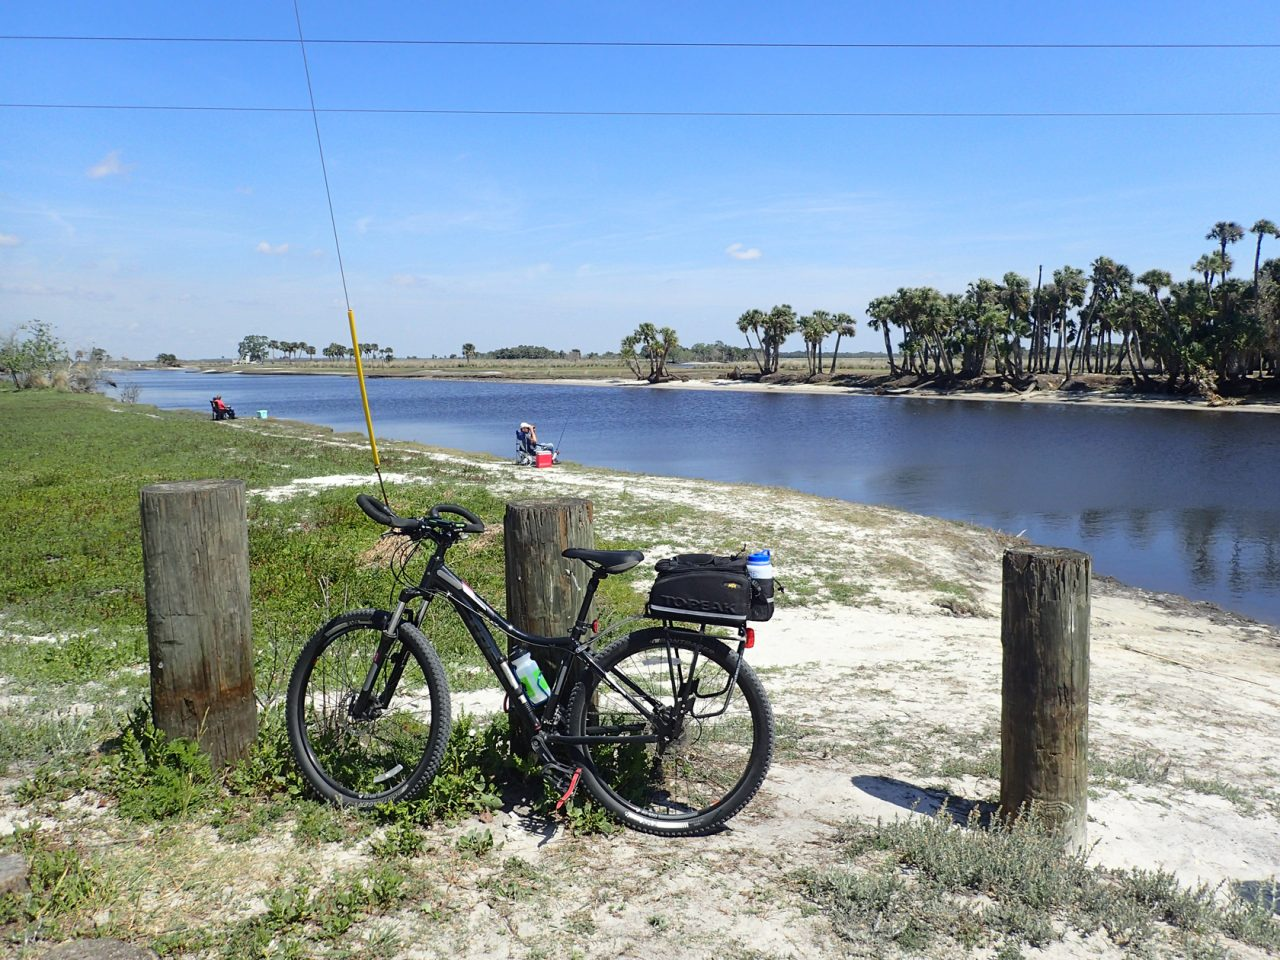 St. Johns River at the end of Powerline Road